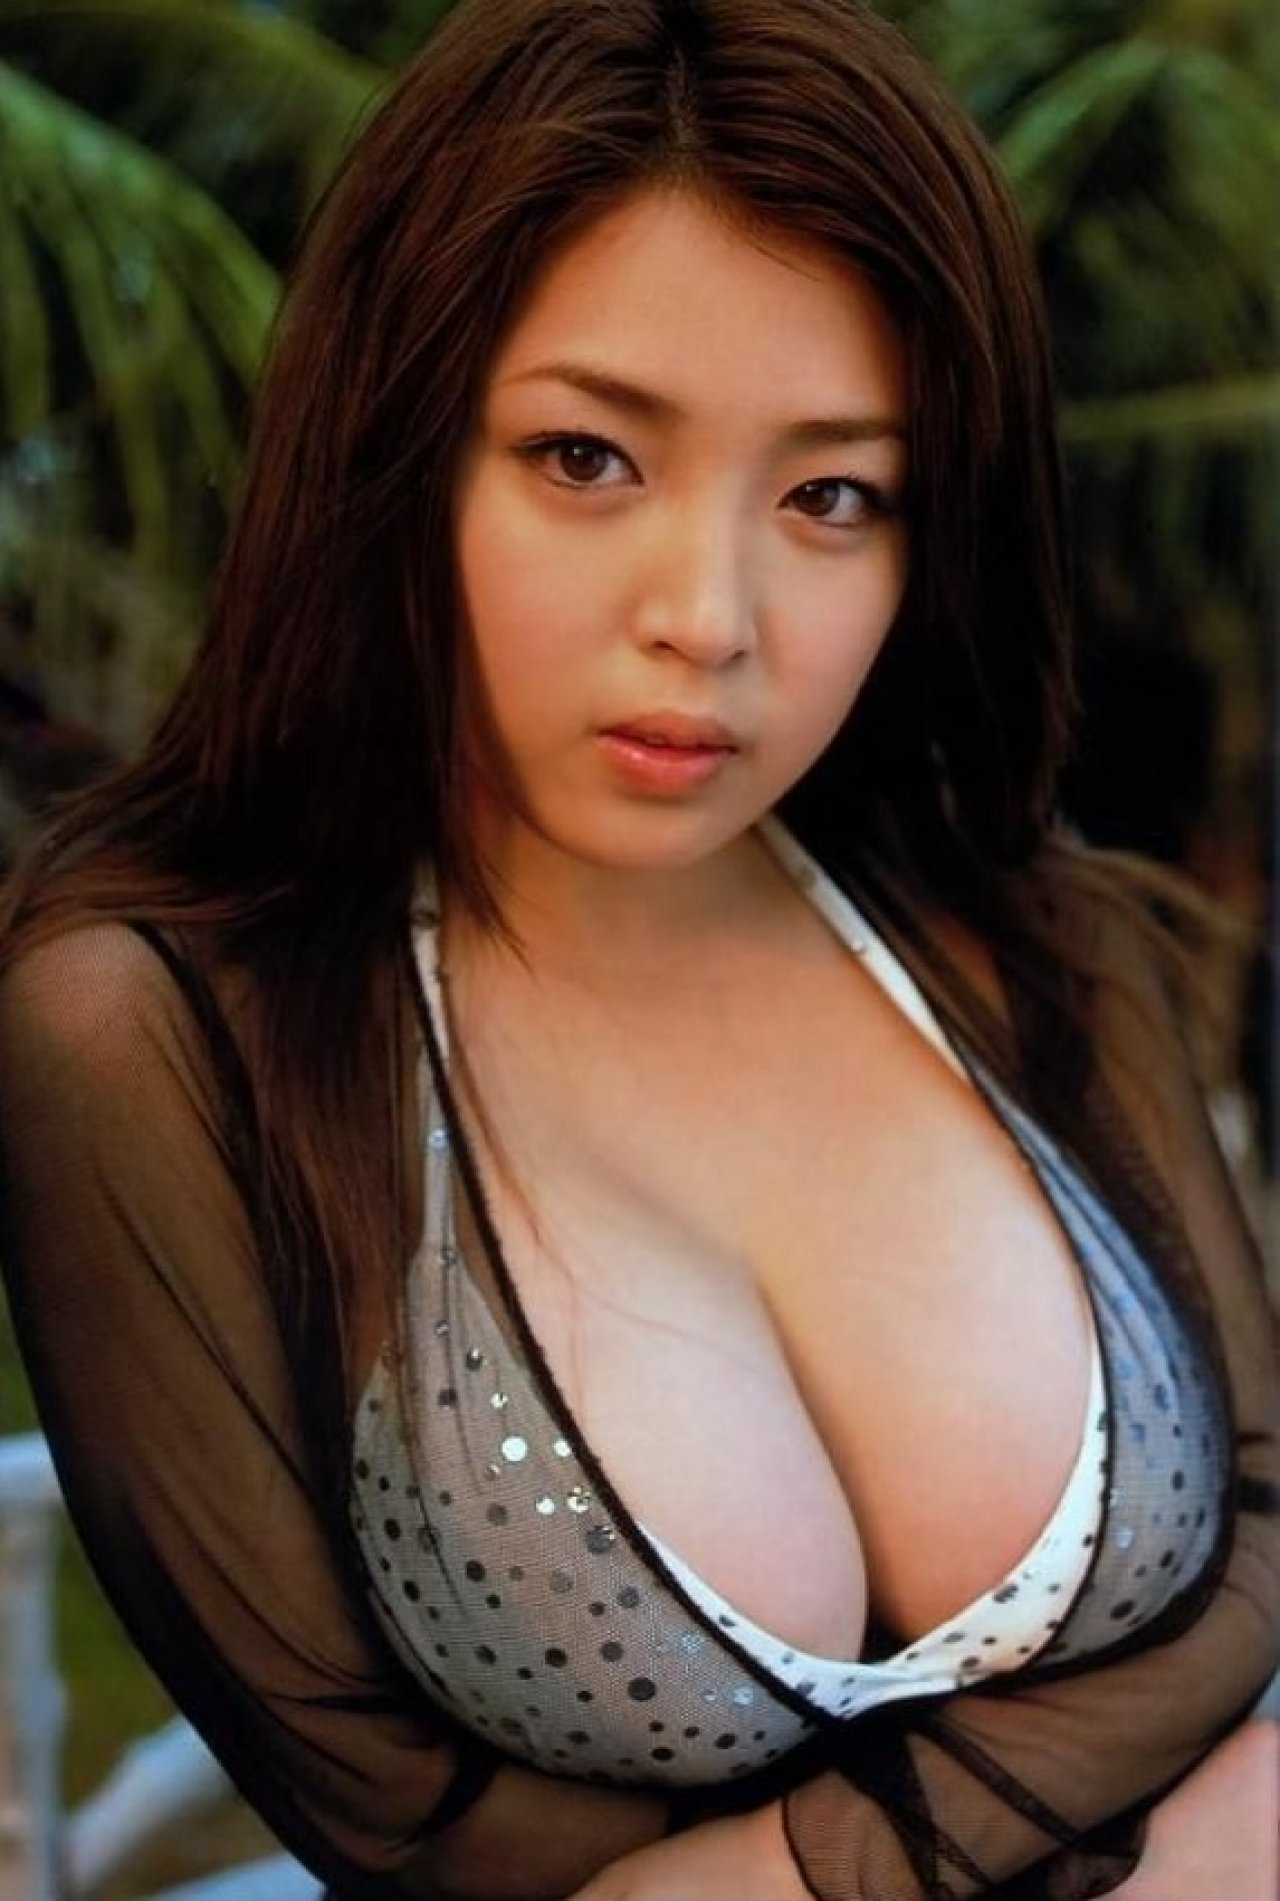 What that huge boobed asian girls very